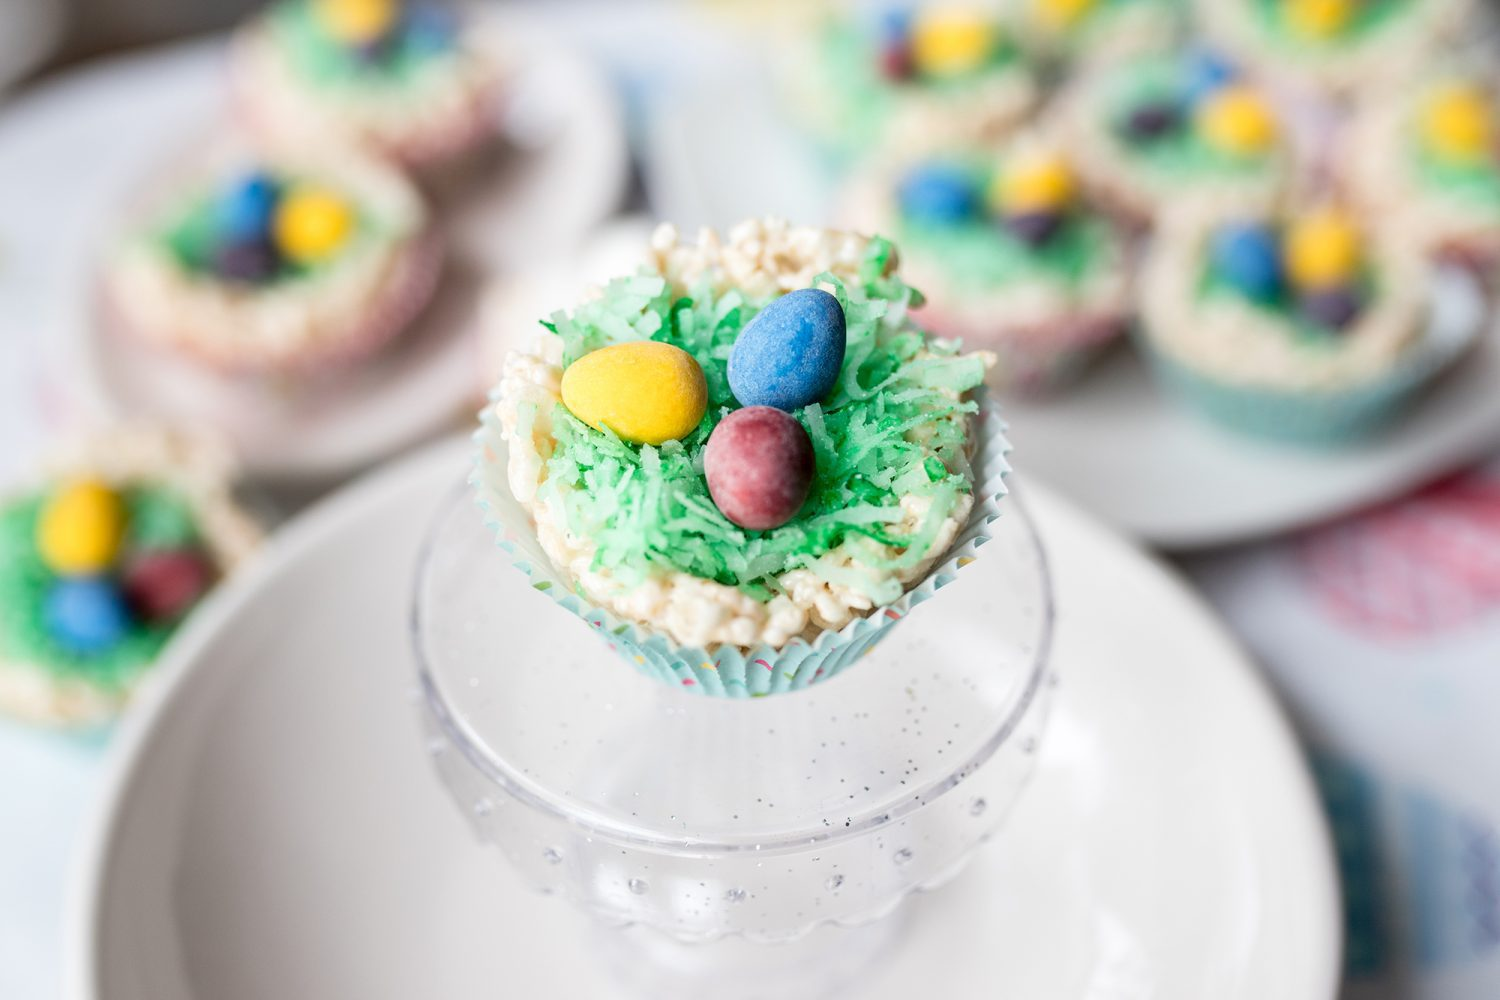 simple easter recipe, easy easter recipe, rice krispie treats, treats for easter, rice krispie treat recipe, rice krispie treat nest, food for easter, recipes for easter, easter, kids, diy, 2019, ideas for easter, recipes for kids